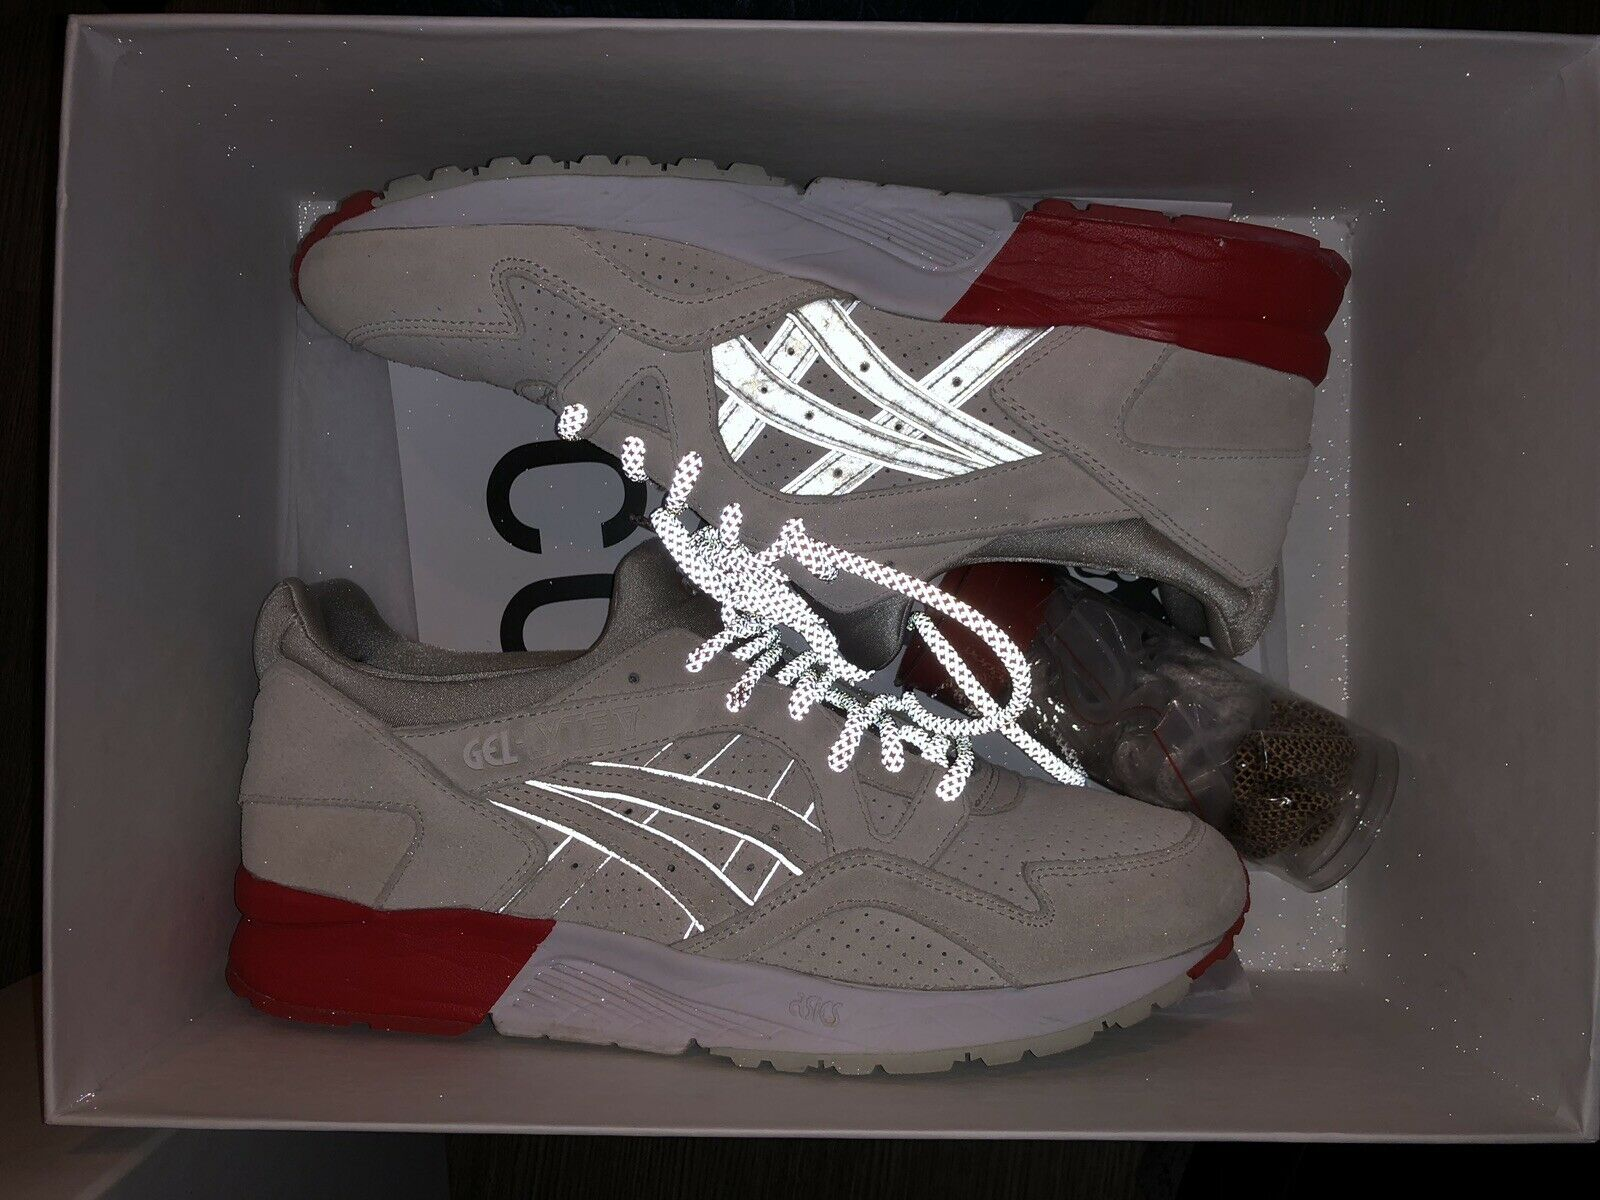 Details about Asics Gel Lyte iii 3 Kith x Moncler Cream white Sz 10.5 HK729 0000 new no box